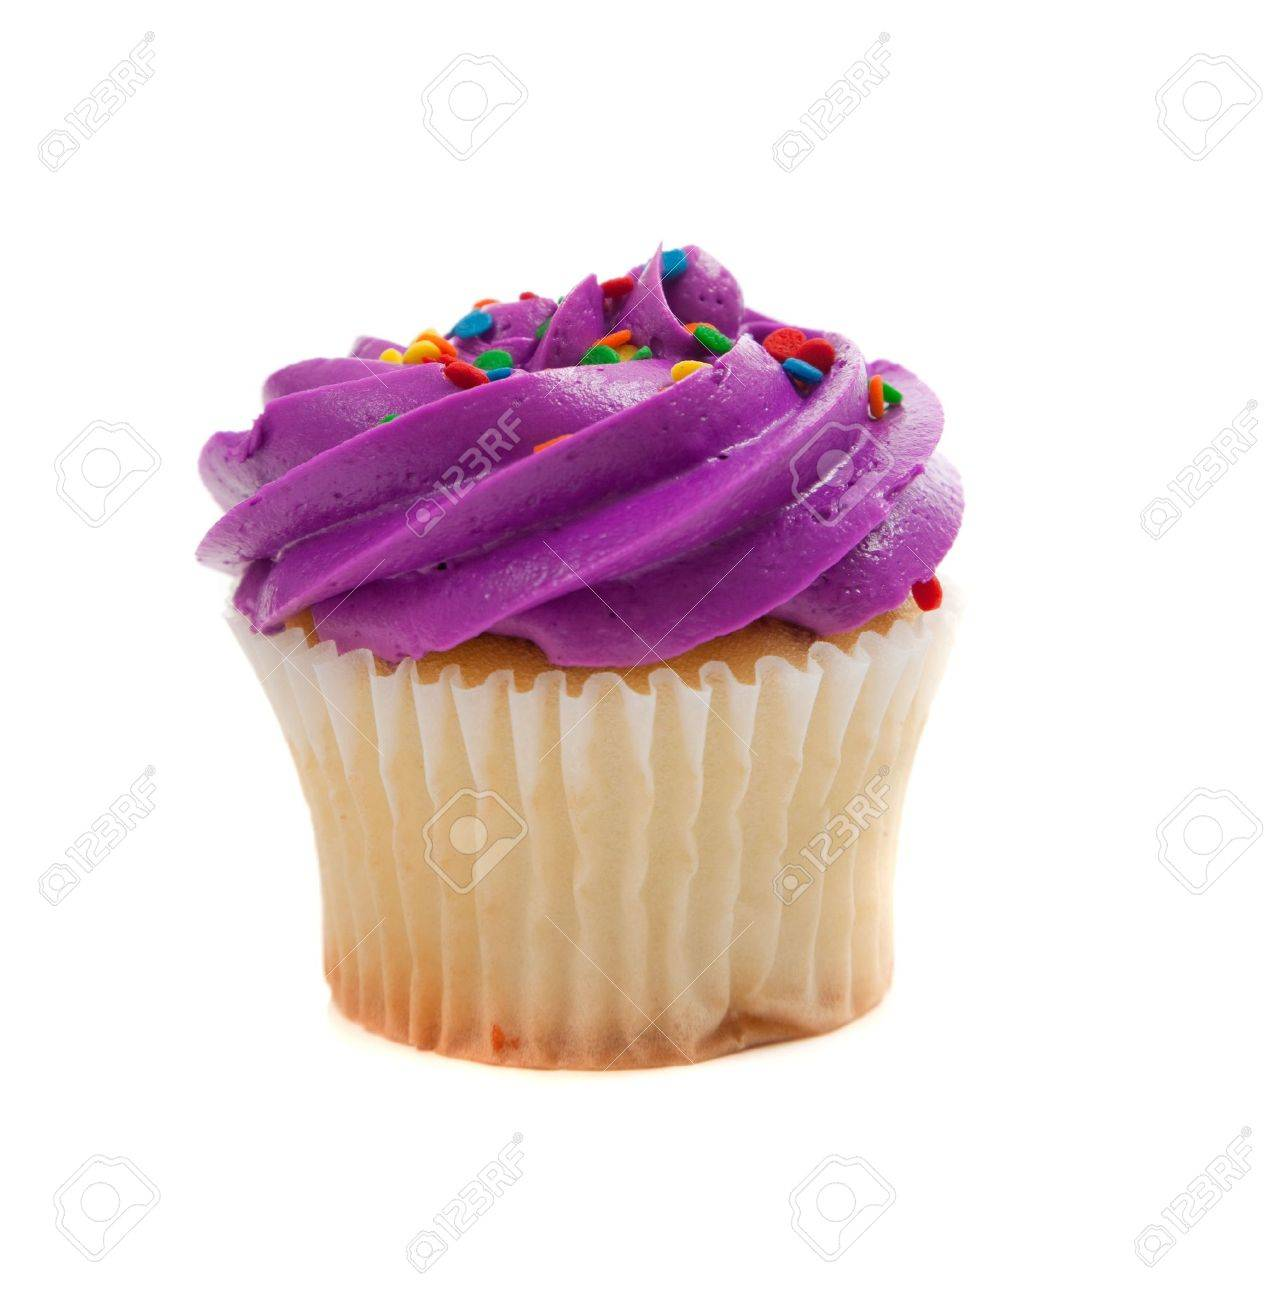 Purple Cupcake with colored sprinkles on a white background